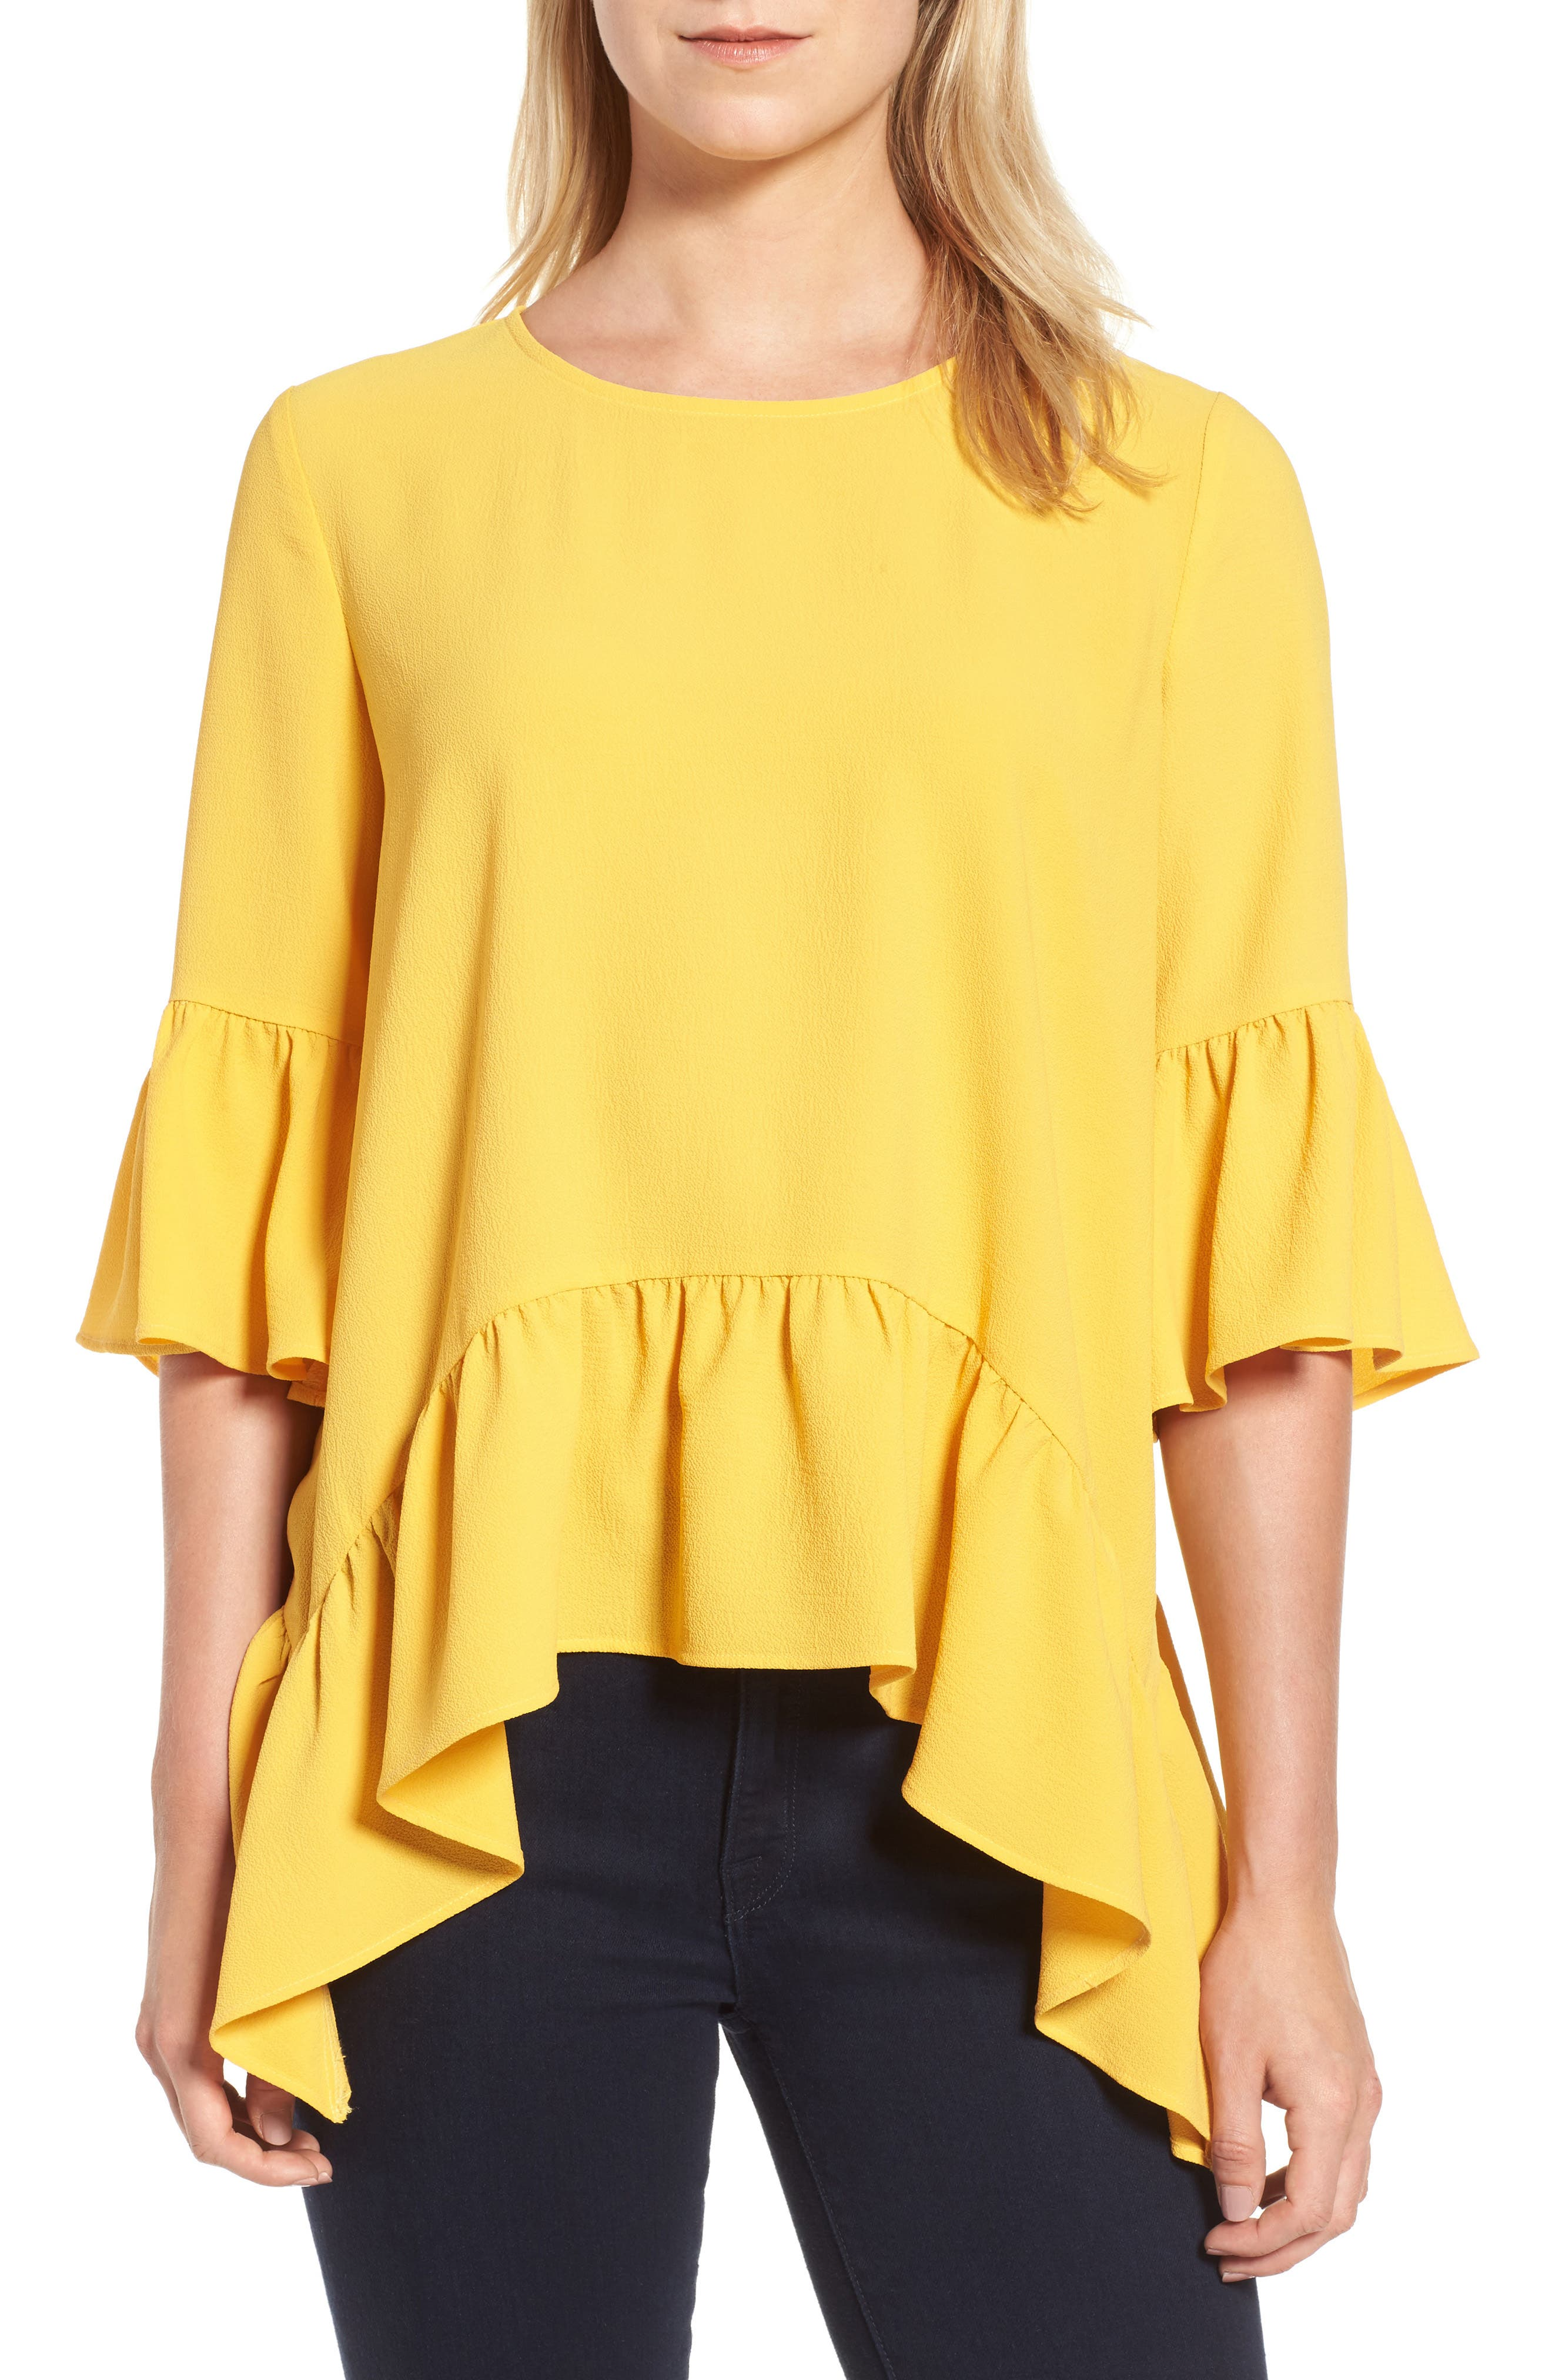 Main Image - Gibson Ruffled Handkerchief Hem Top (Regular & Petite)